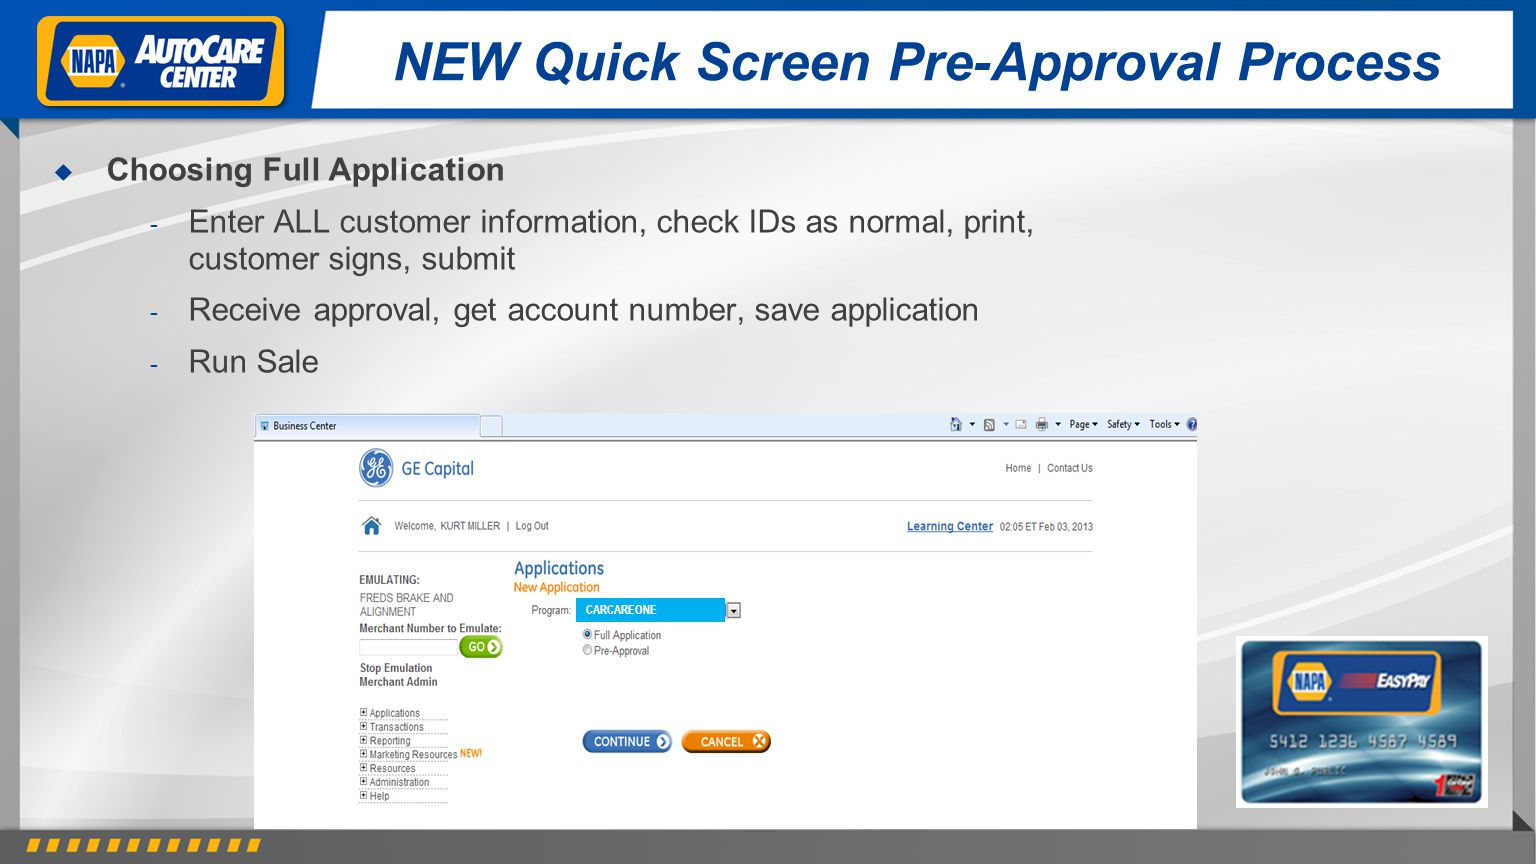 NEW Quick Screen Pre-Approval Process CARCAREONE Choosing Full Application - Enter ALL customer information, check IDs as normal, print, customer sign